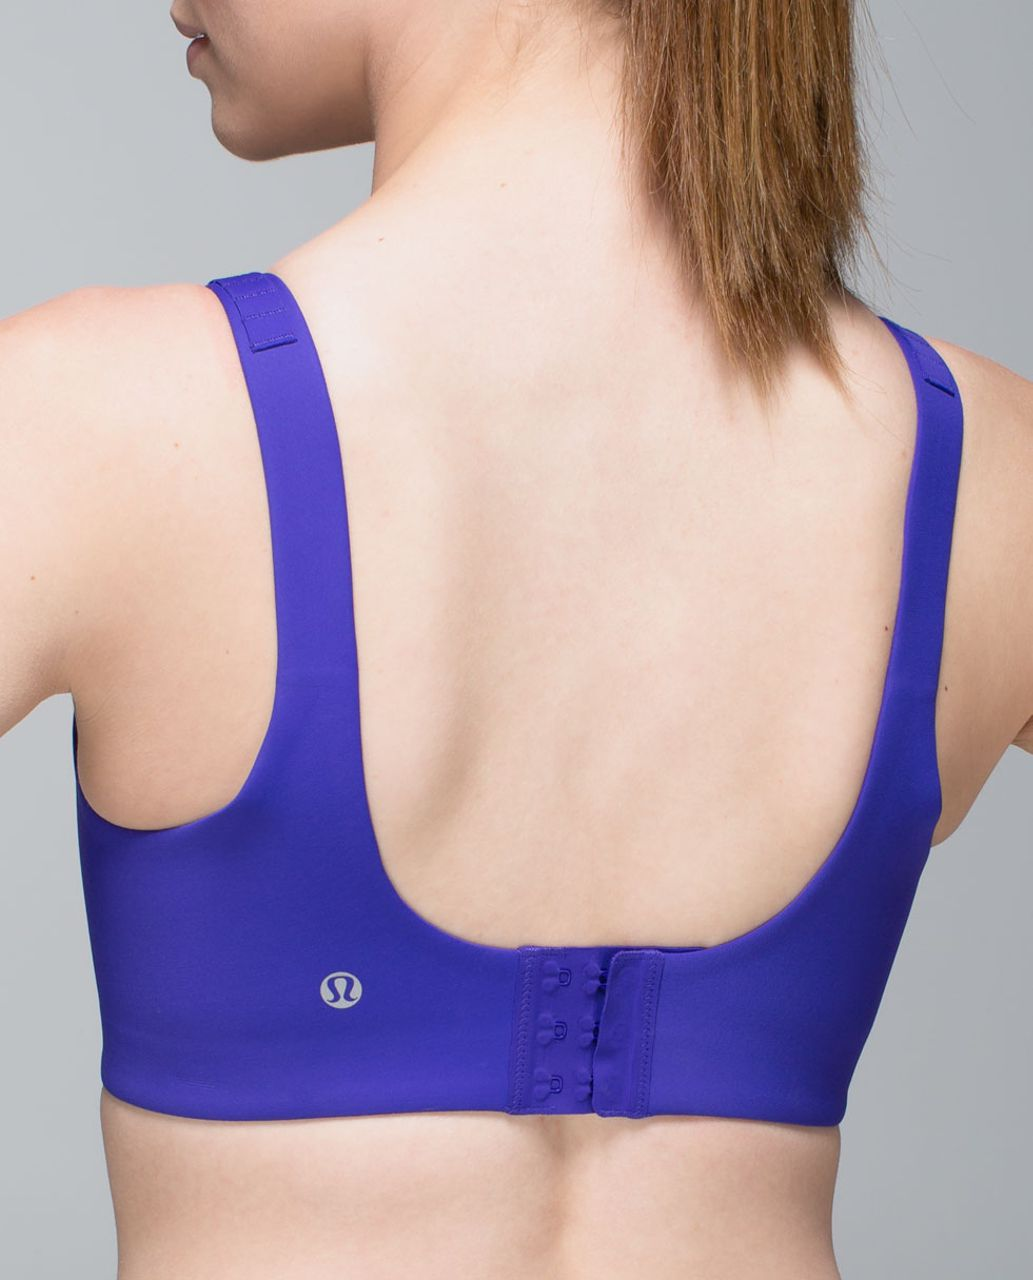 Lululemon Booby Bracer (D-E cup) - Bruised Berry